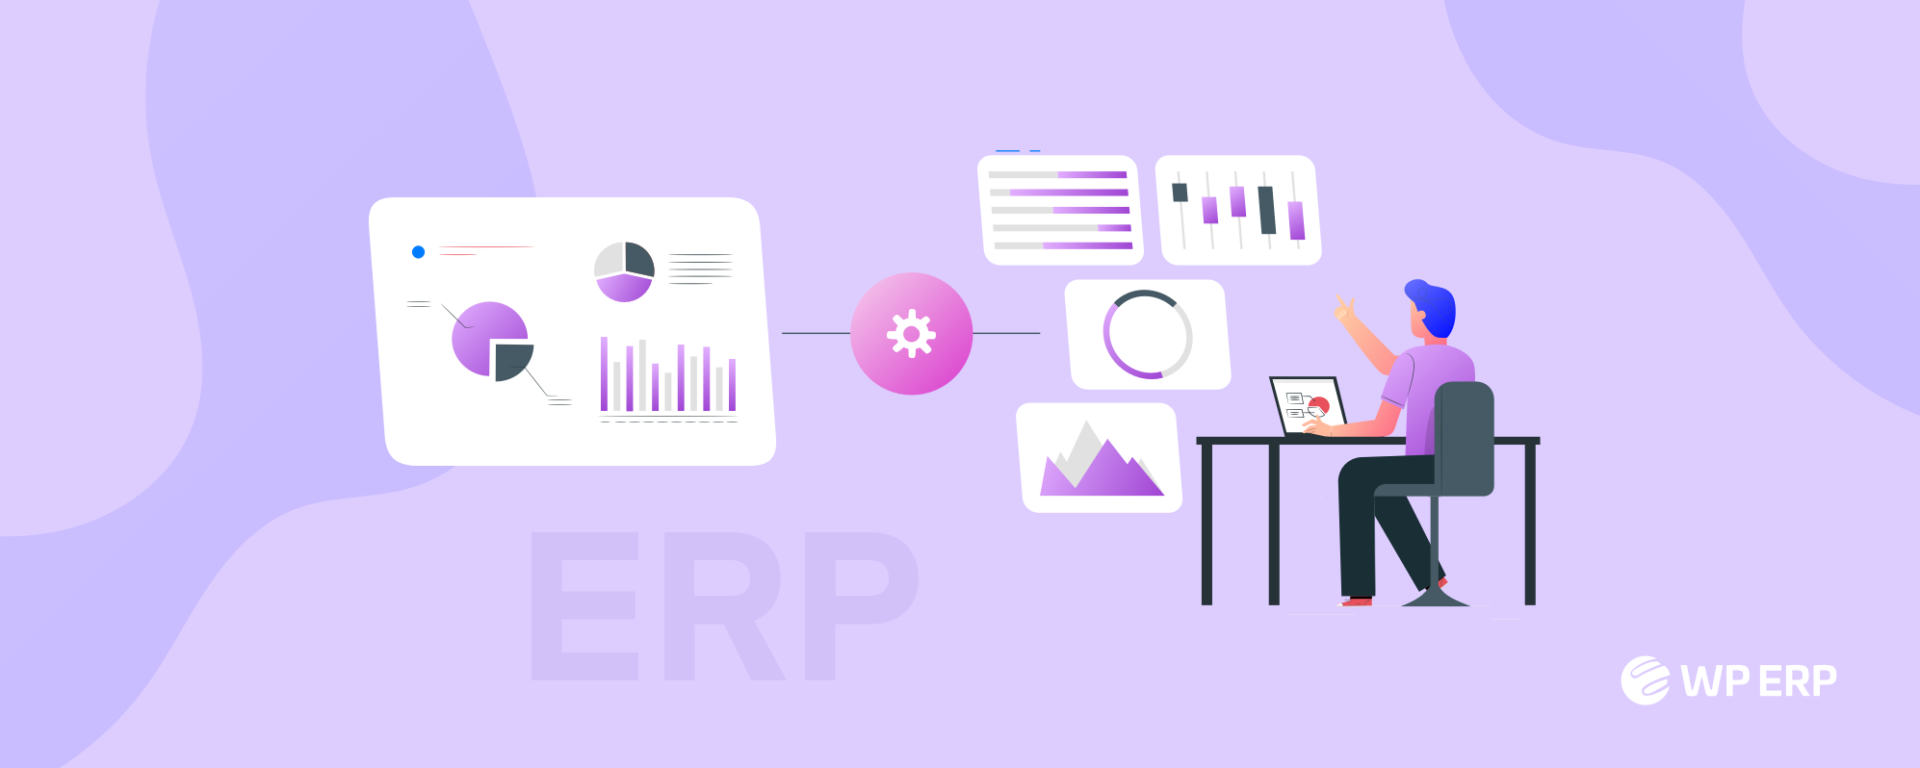 ERP for business analytics